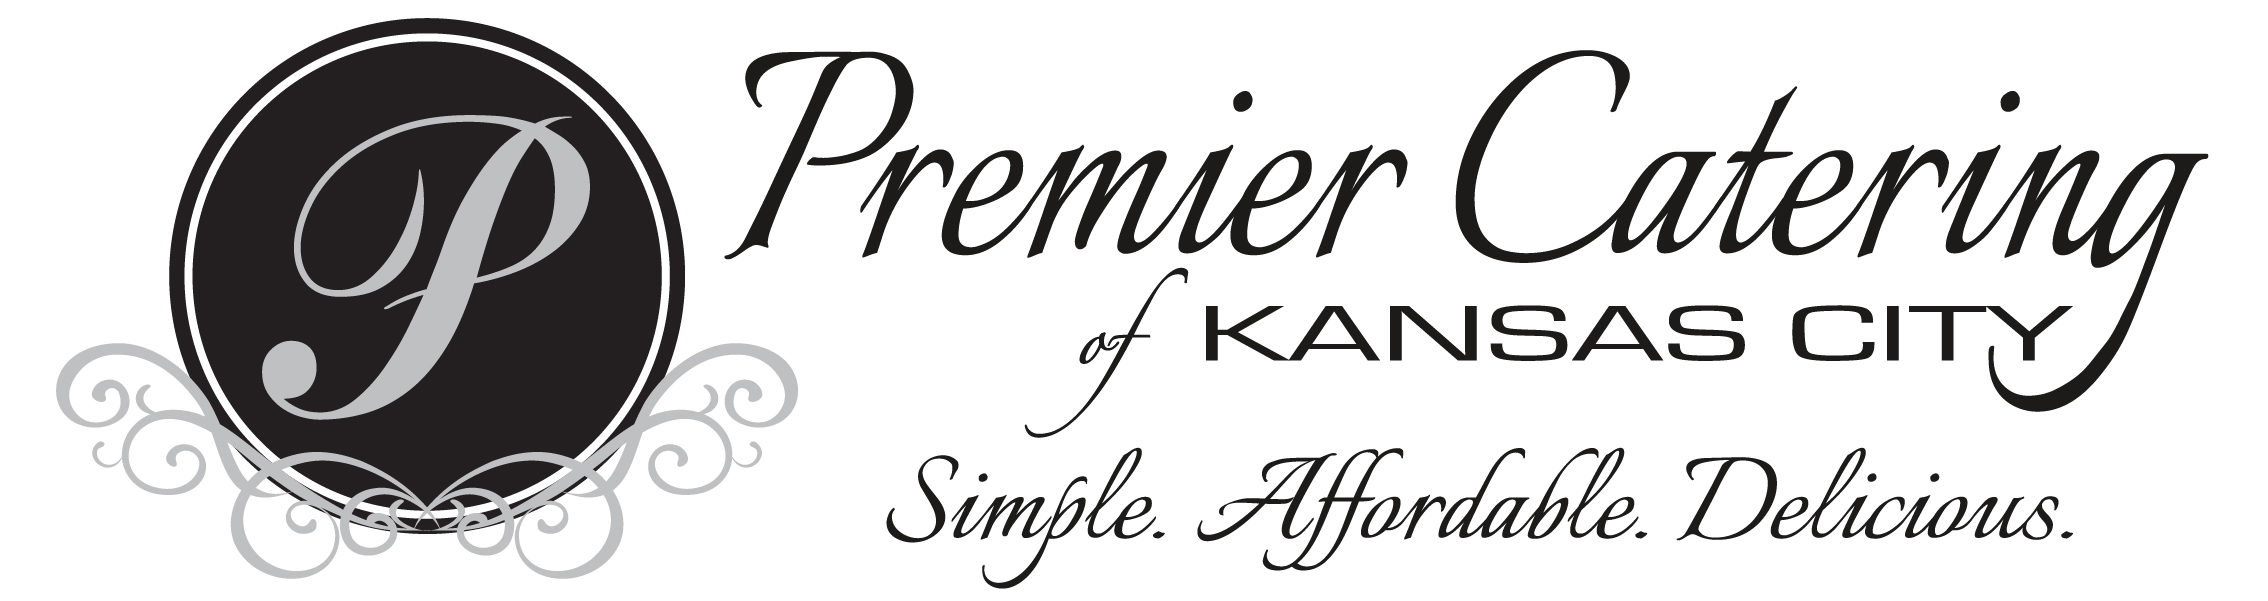 Premier Catering of KC